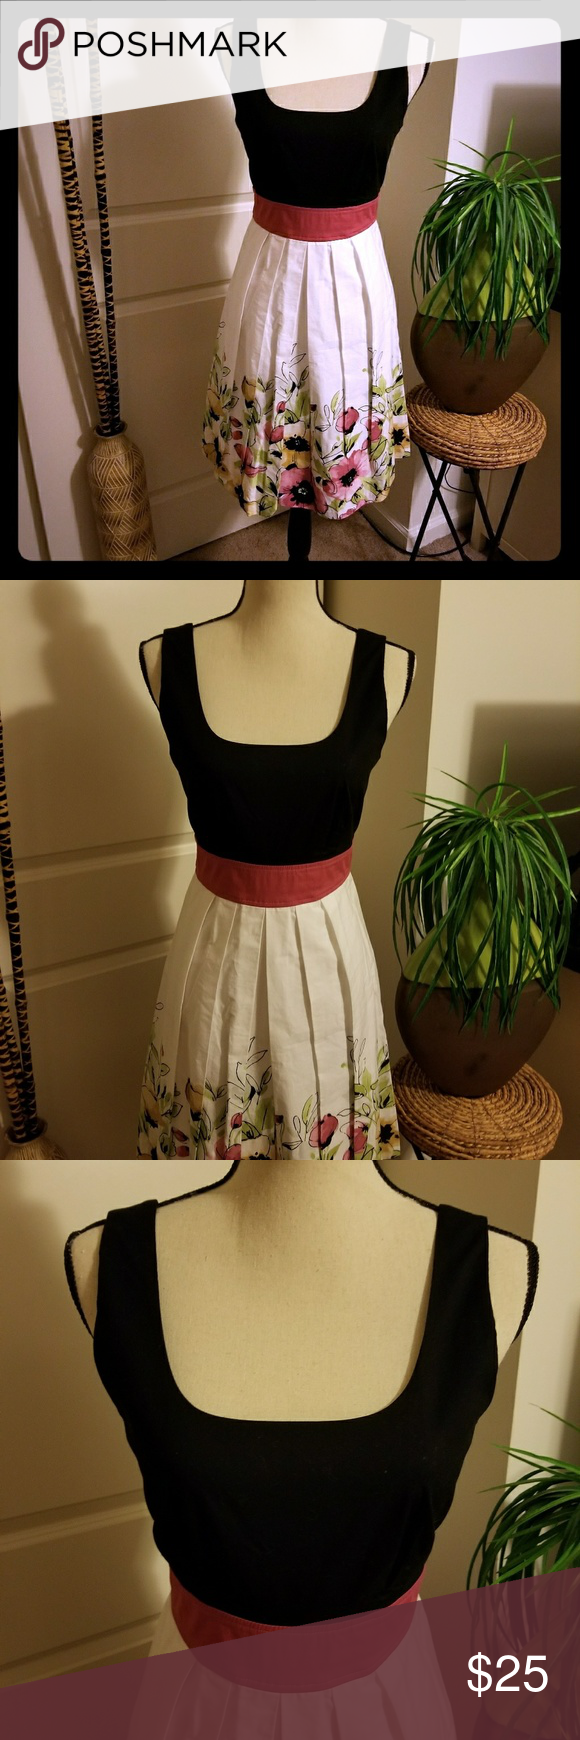 Dress Black top, mauve center and floral bottom.Tie back dress worn a few times, total length 37 inches. Maurices Dresses Midi